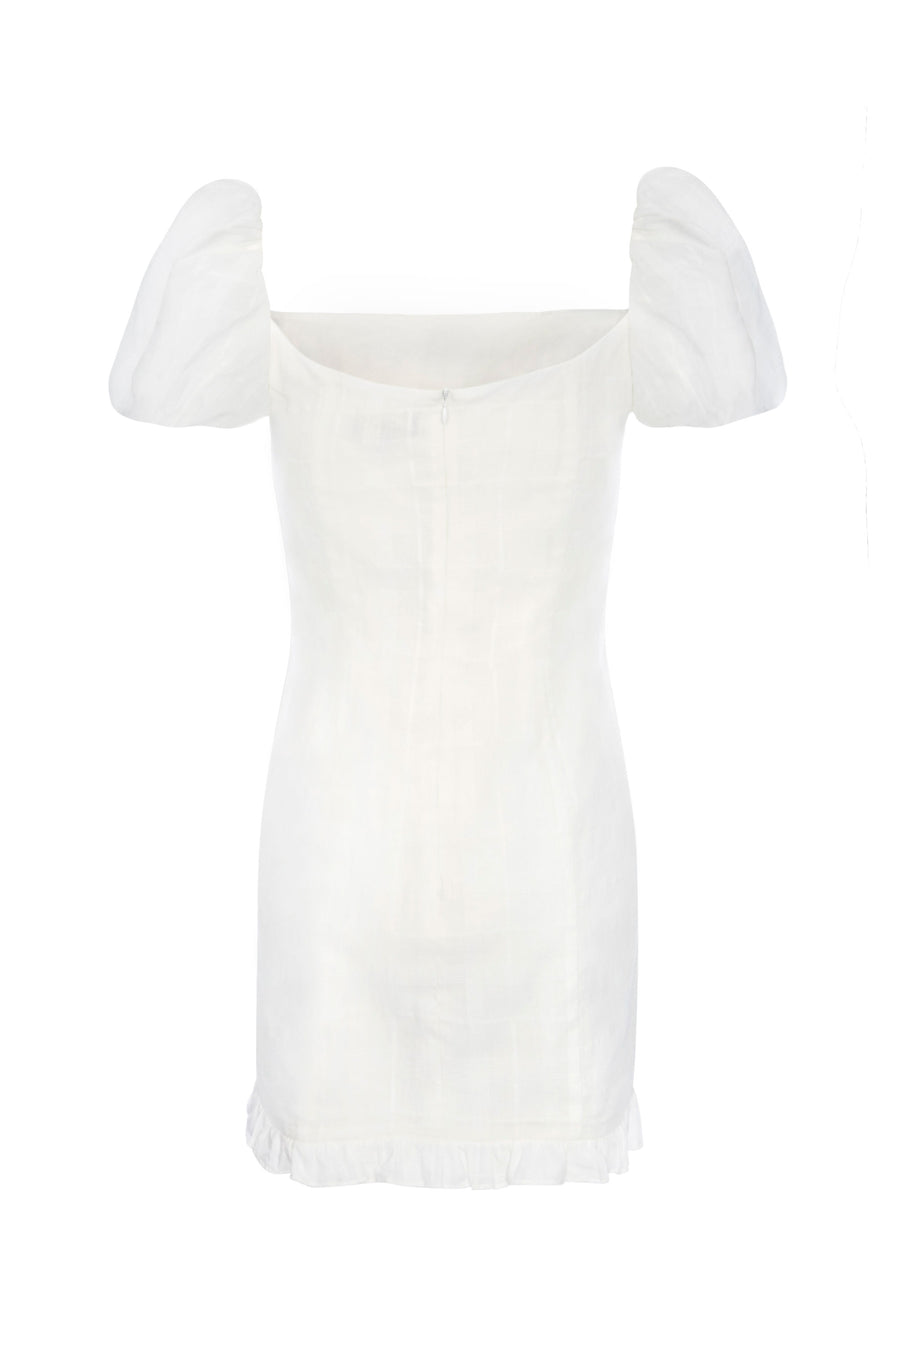 Koko Cotton Mini Dress in White